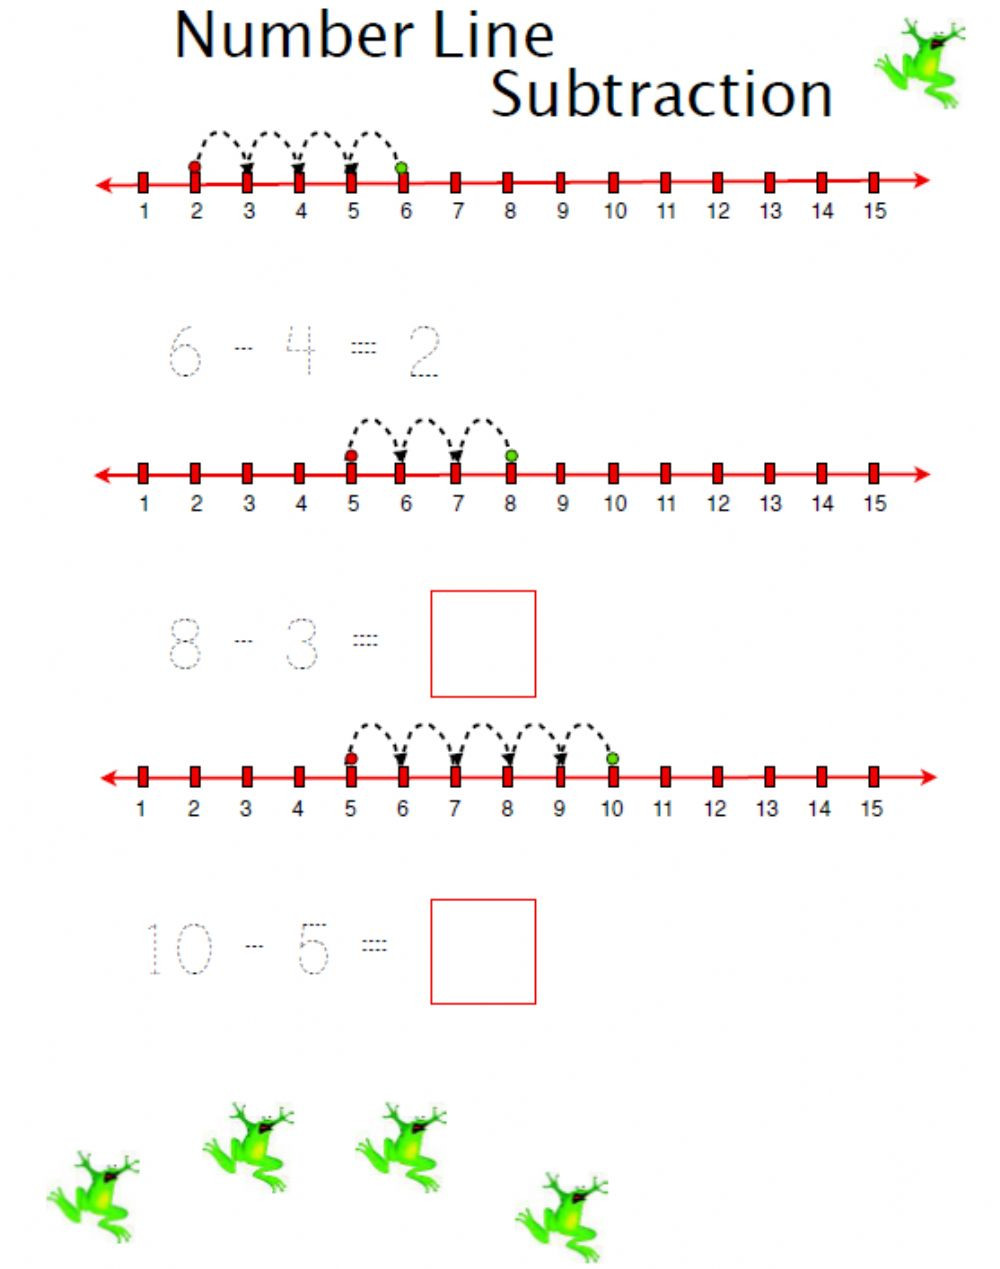 Number Line Subtraction vq hx